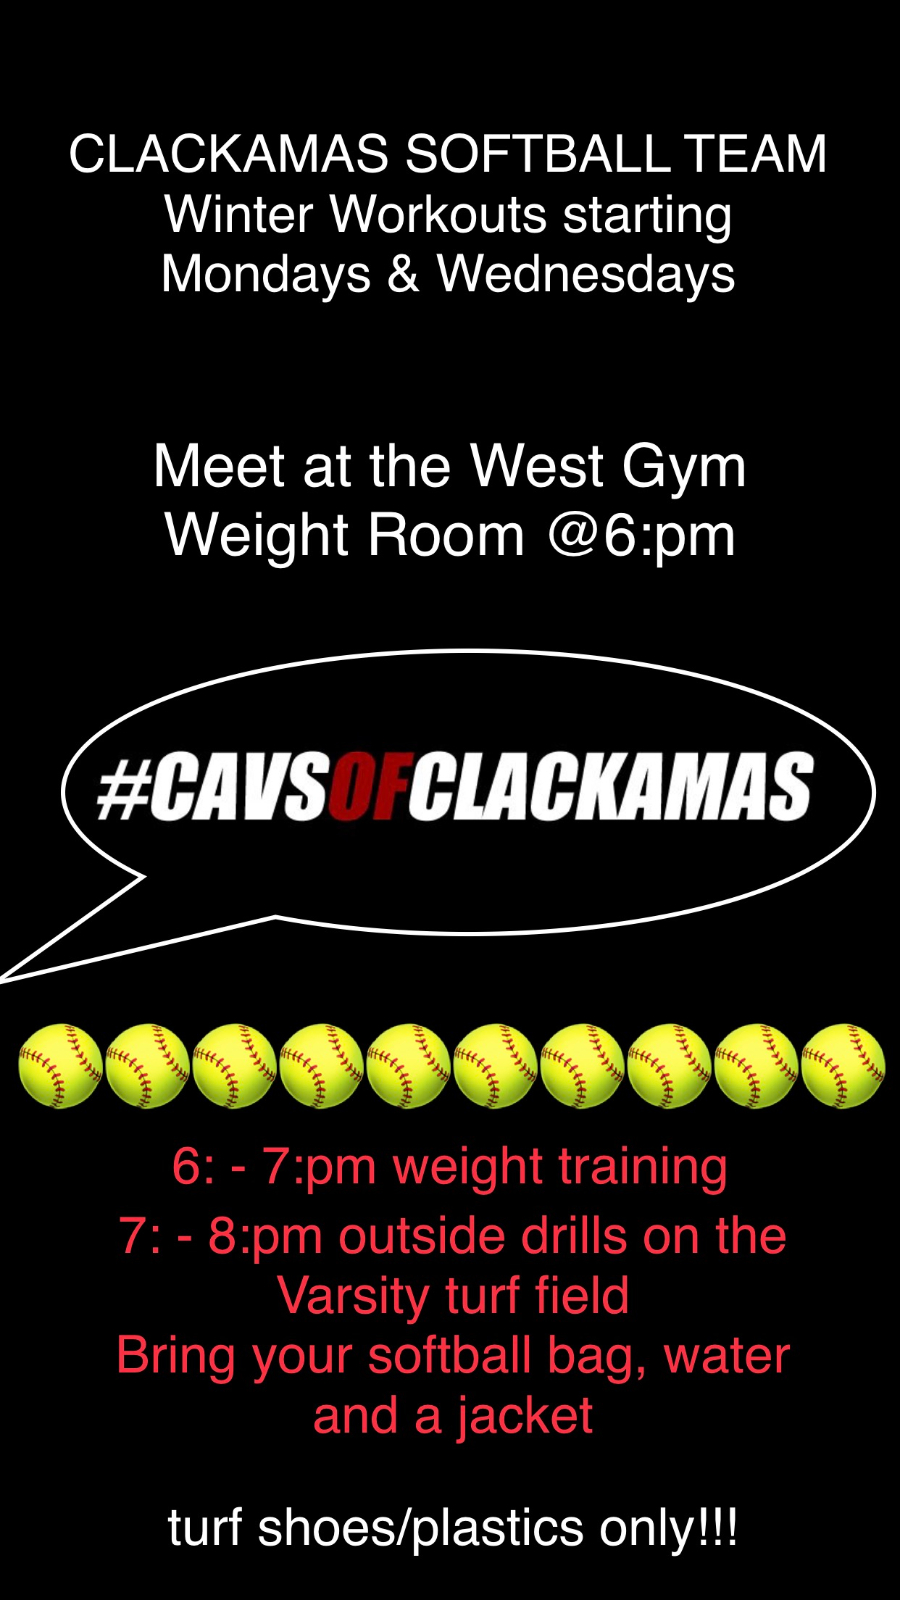 Softball Workouts are beginning Monday, October 7th